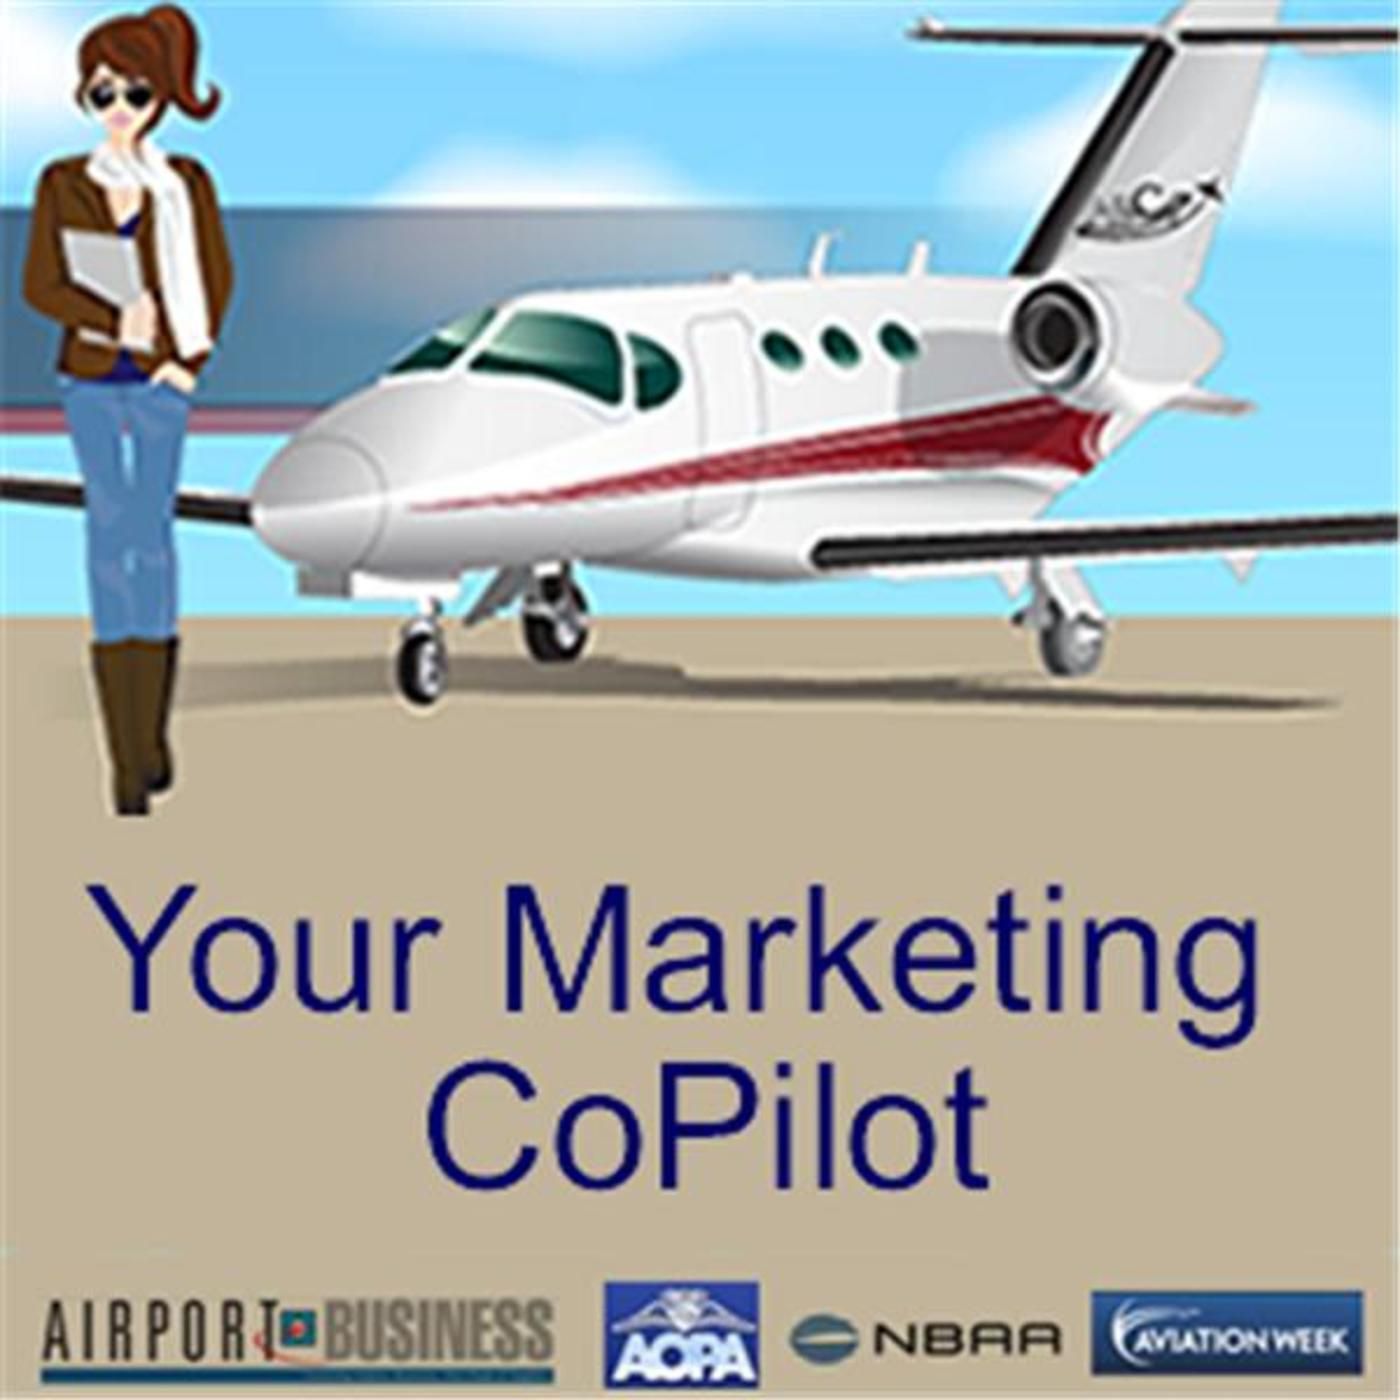 Sales and Marketing CoPilot